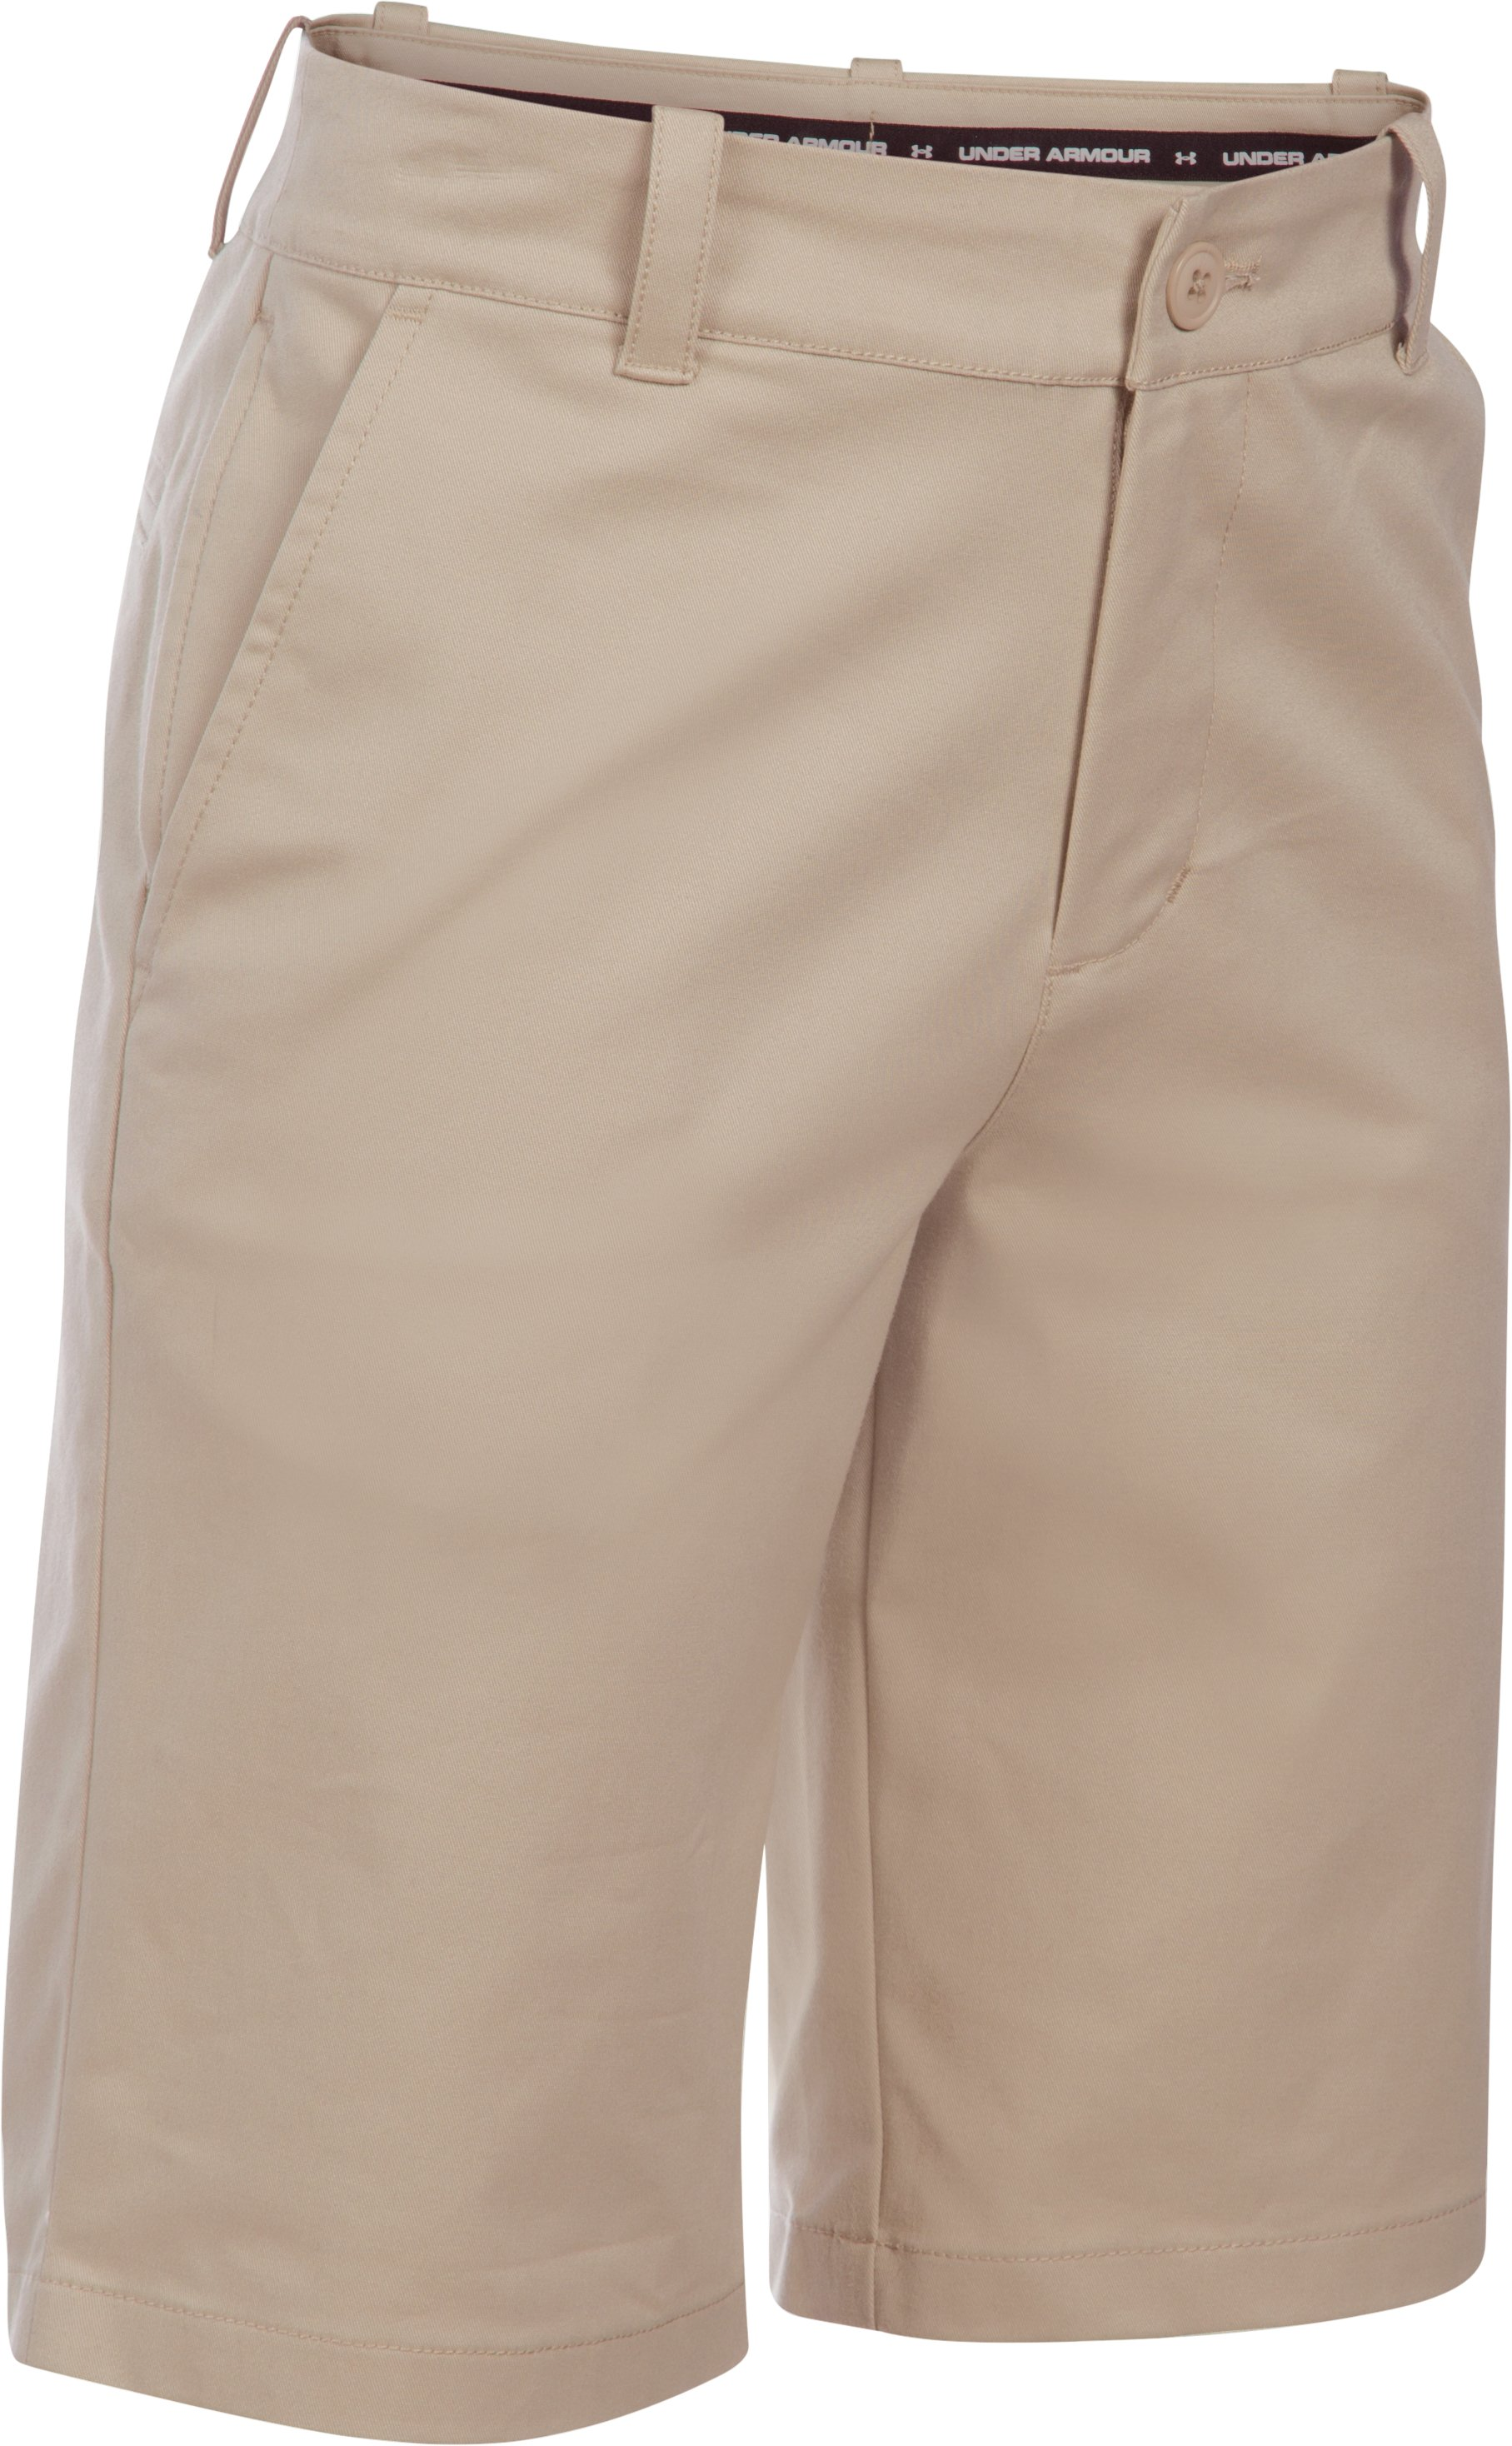 Boys' UA Uniform Chino Shorts – Pre-School, Desert Sand,